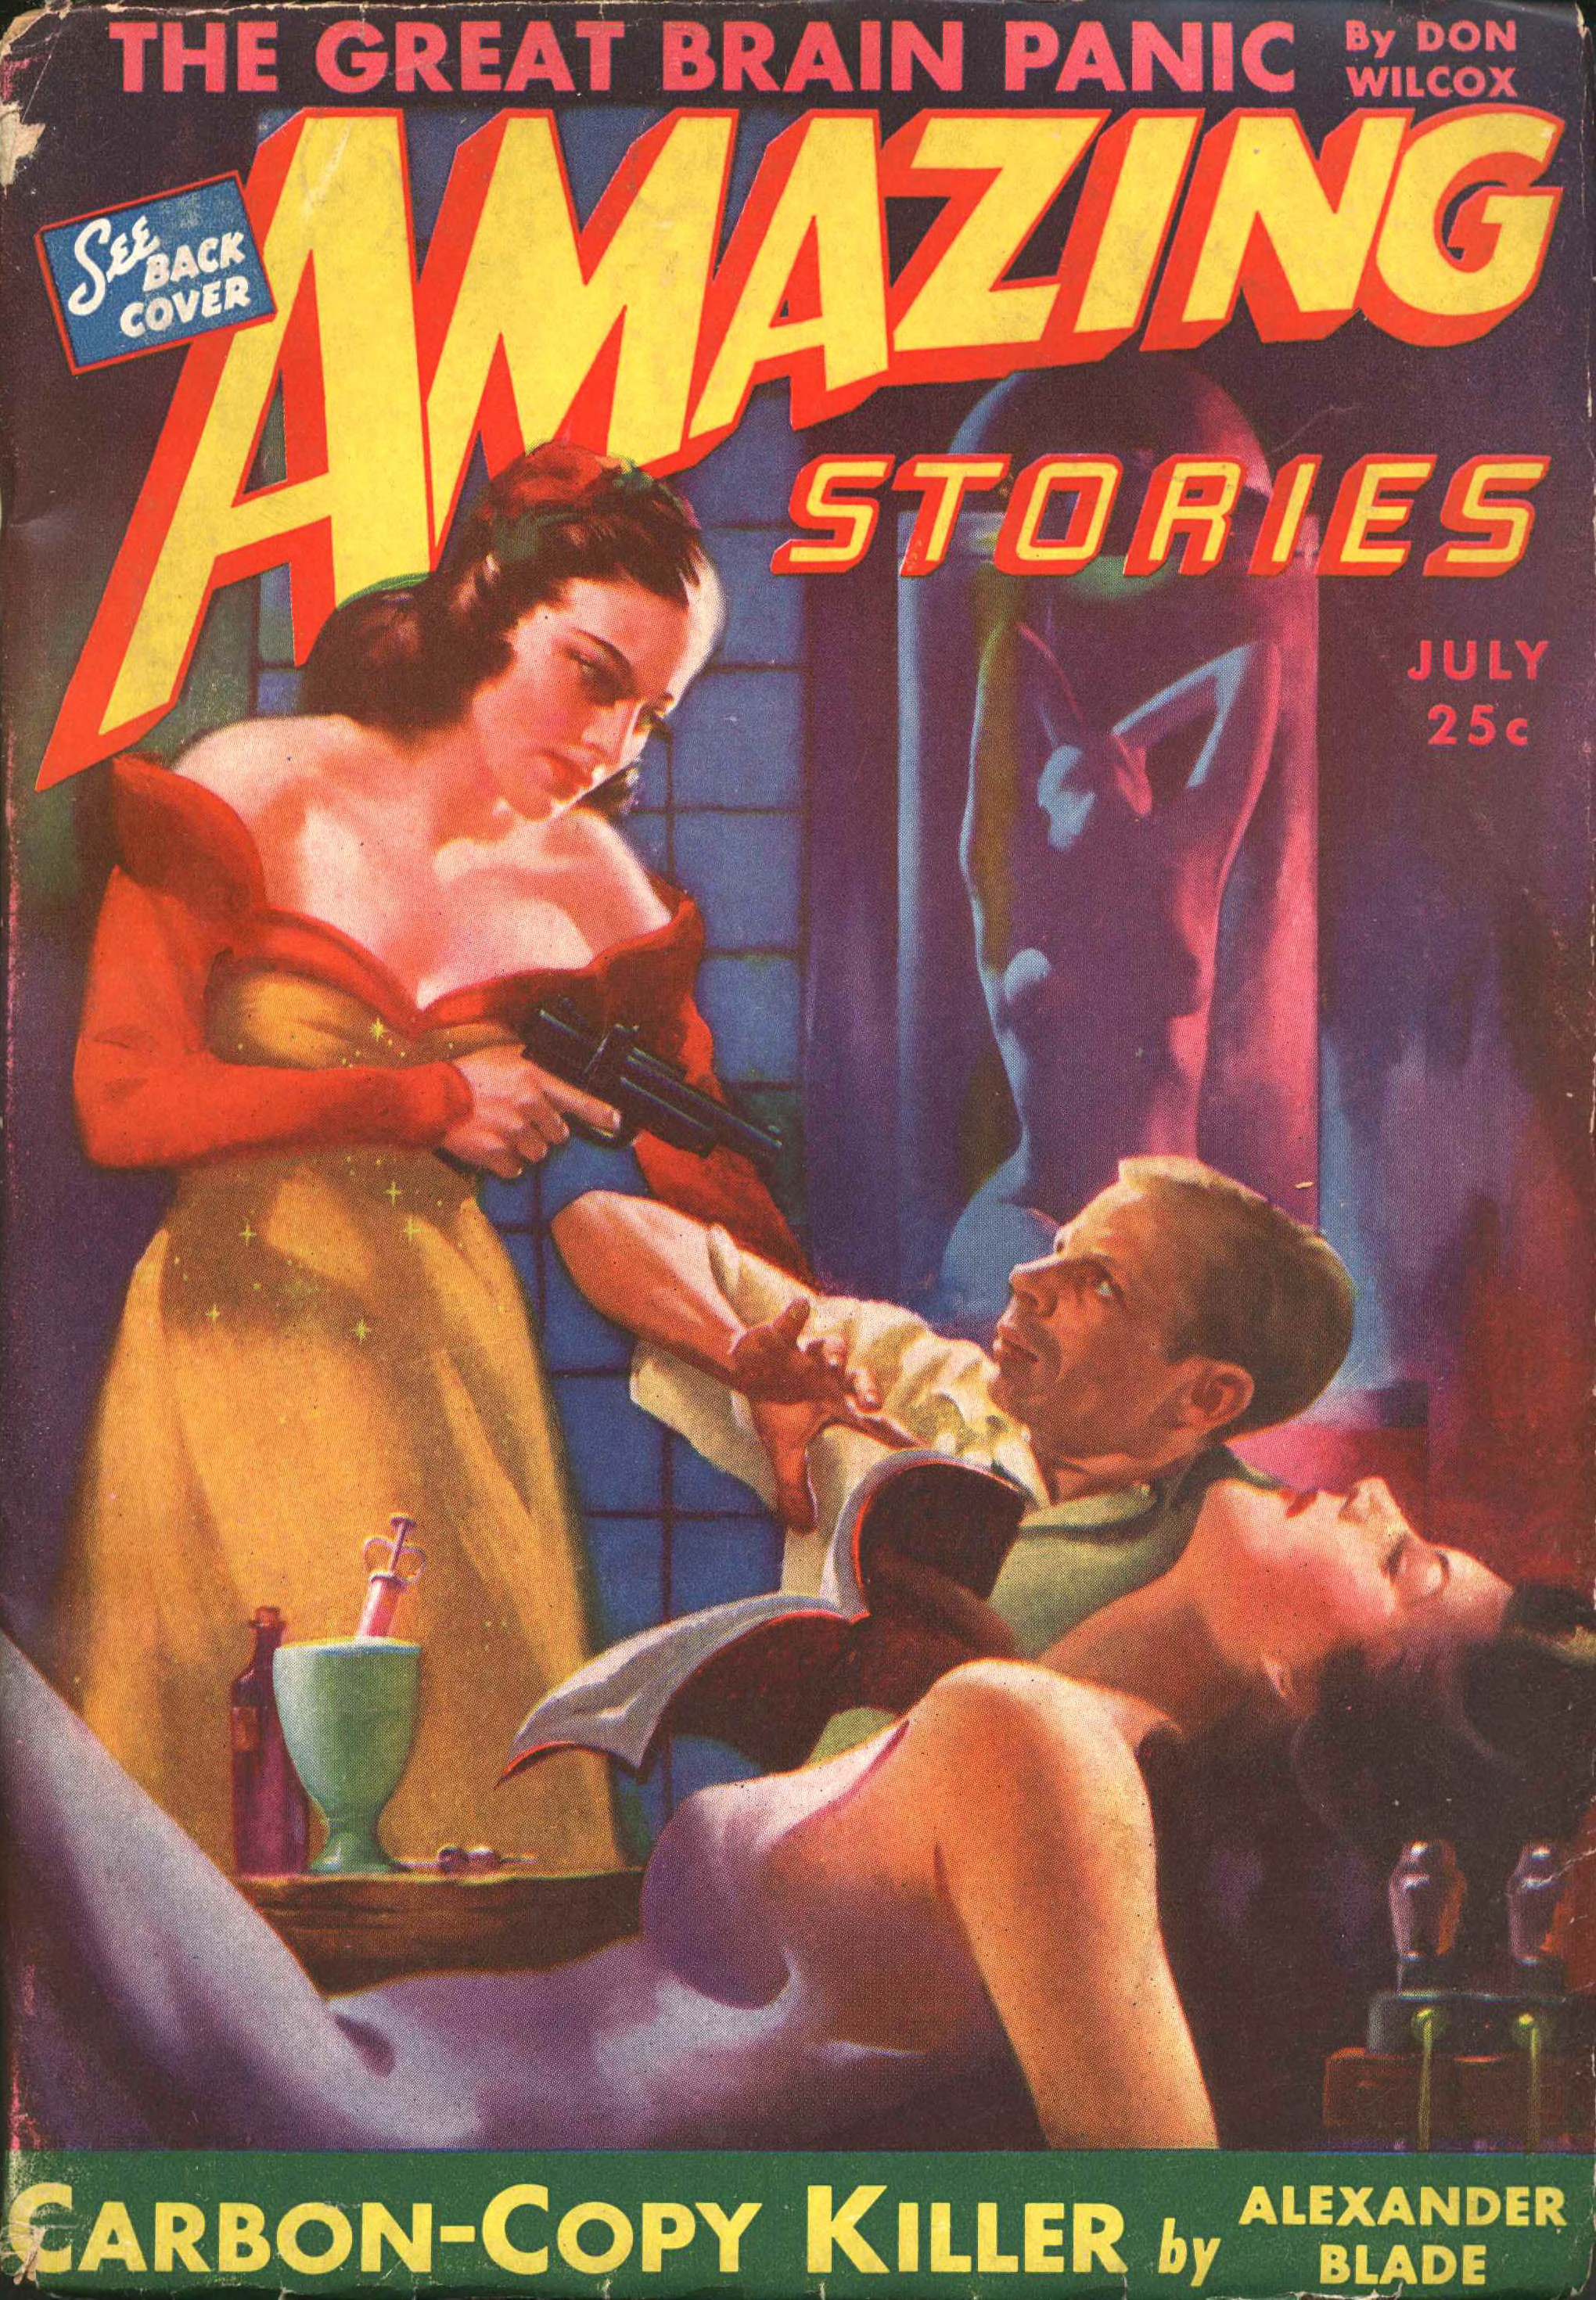 Cover of Amazing Stories for July 1943 by Harold W. McCauley.